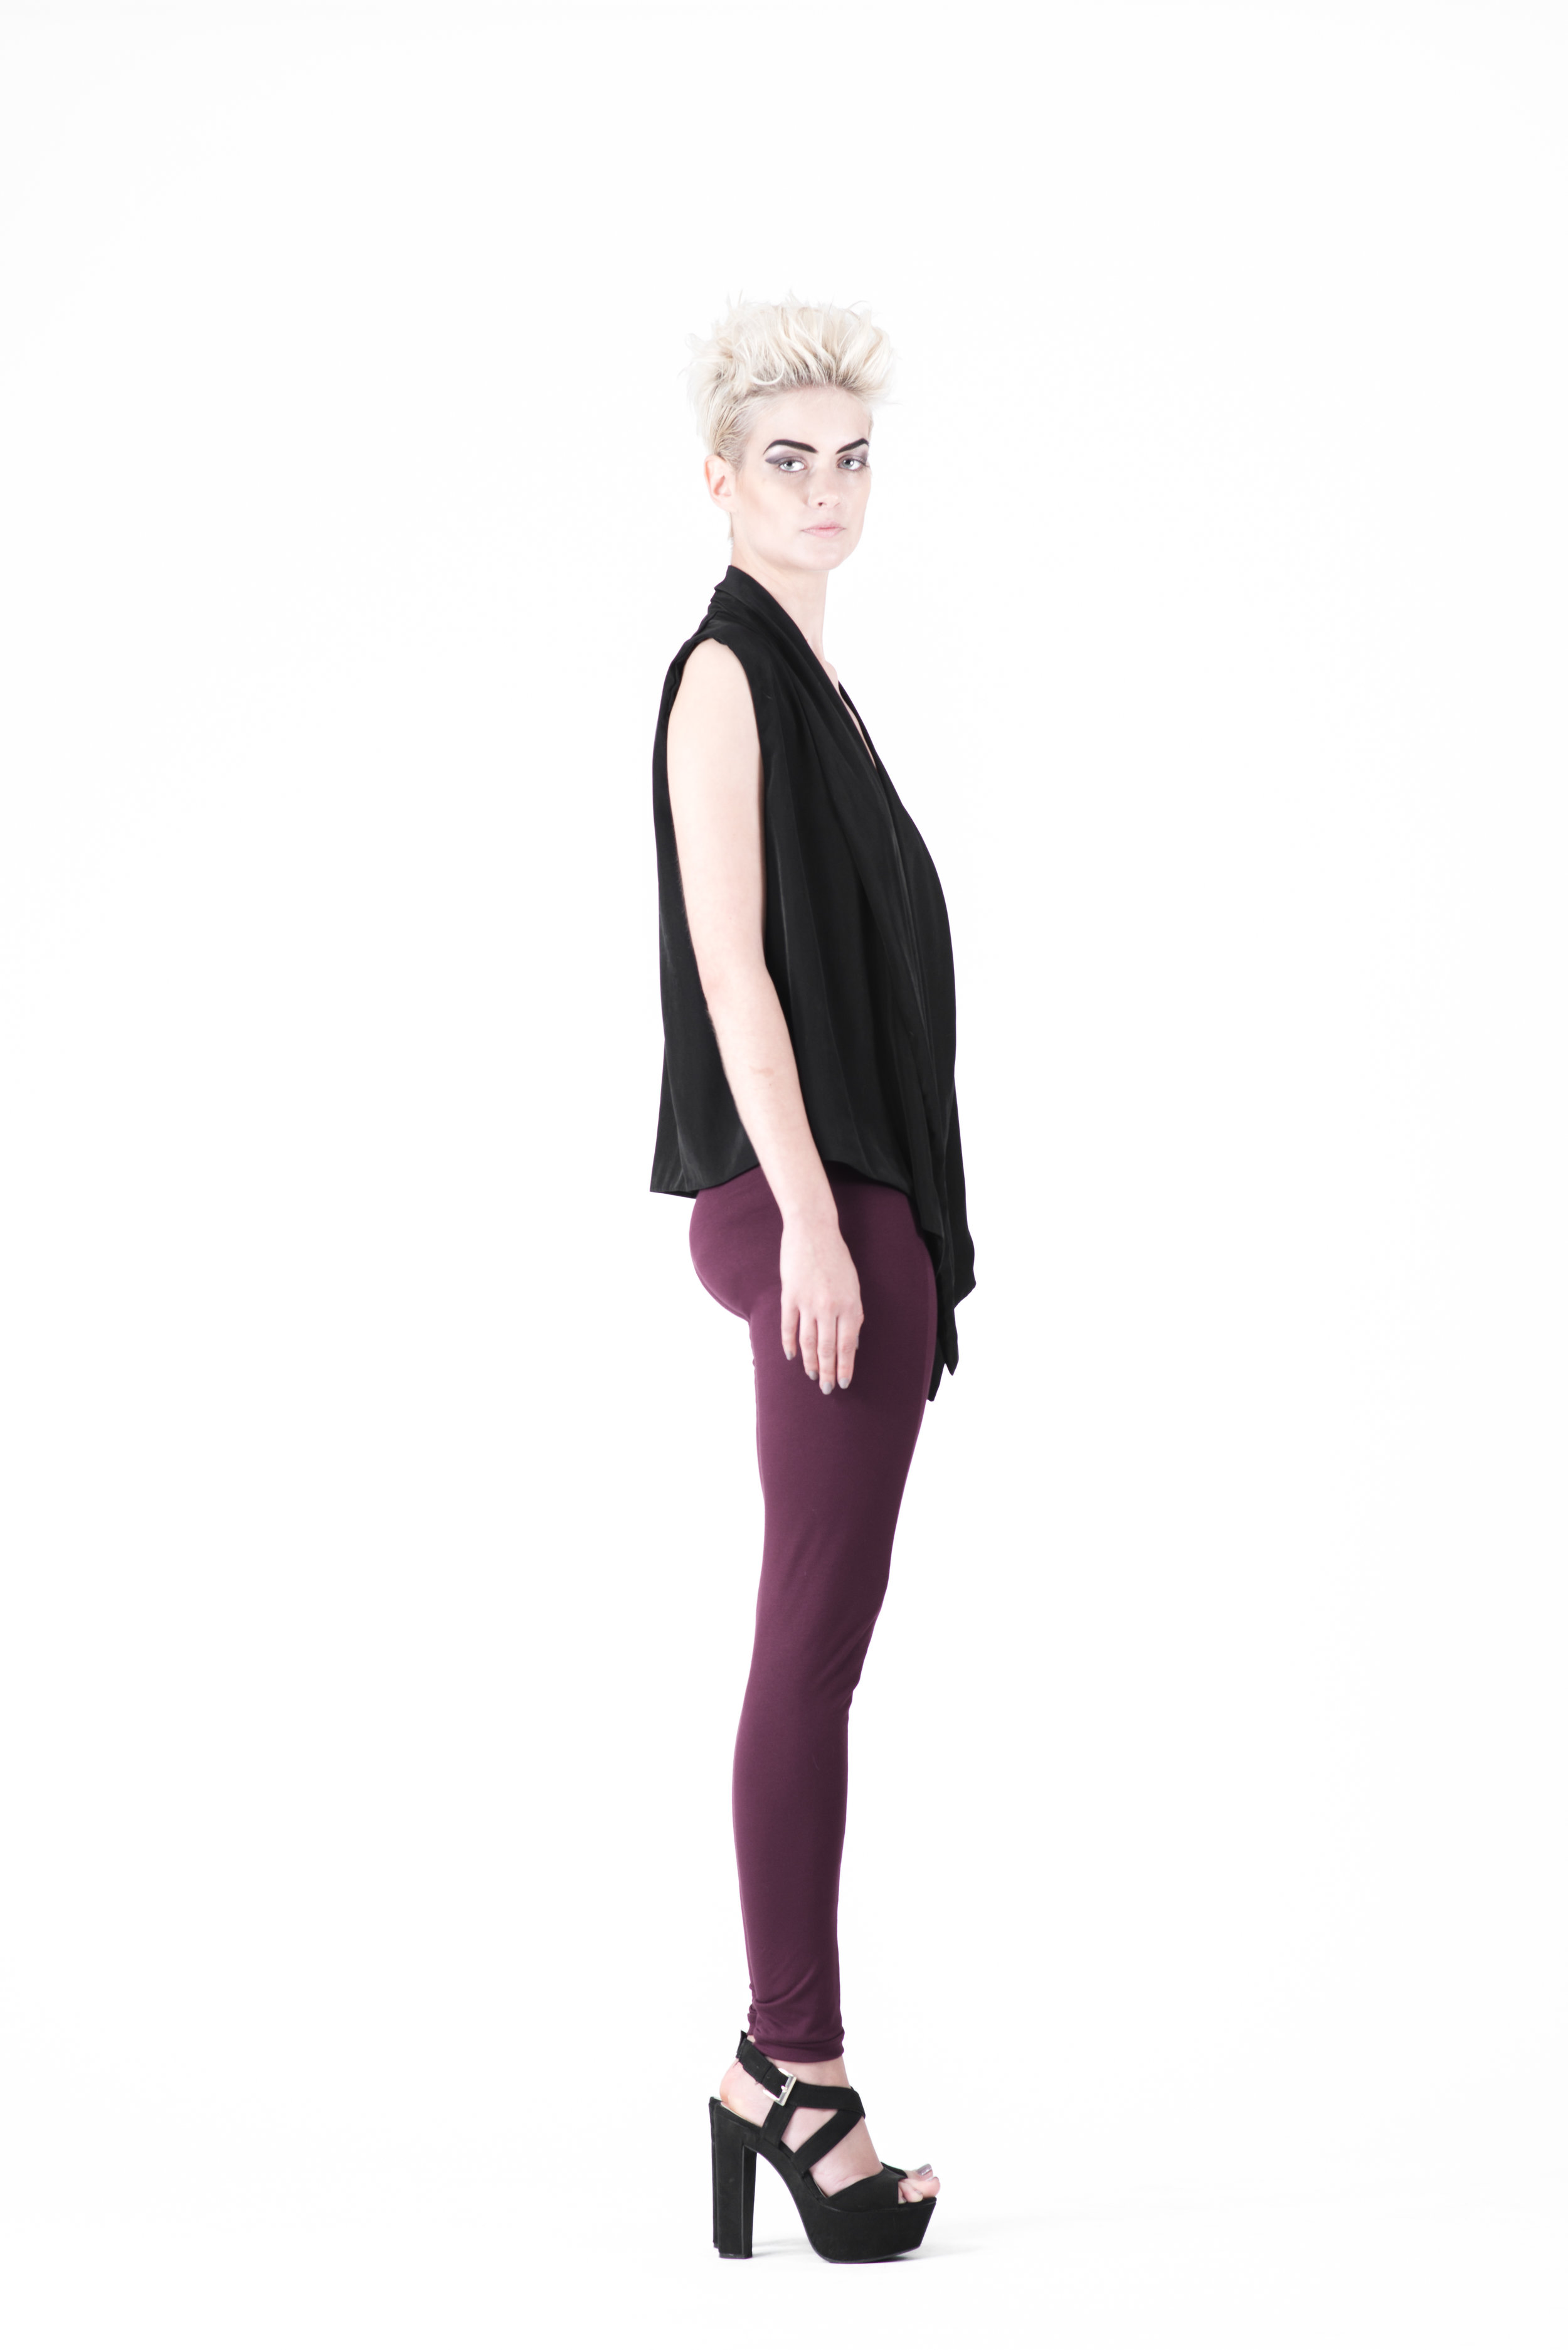 zaramia-ava-zaramiaava-leeds-fashion-designer-ethical-sustainable-tailored-minimalist-mioka-top-obi-belt-black-rei-plum-versatile-drape-cowl-styling-womenswear-models-photoshoot-49